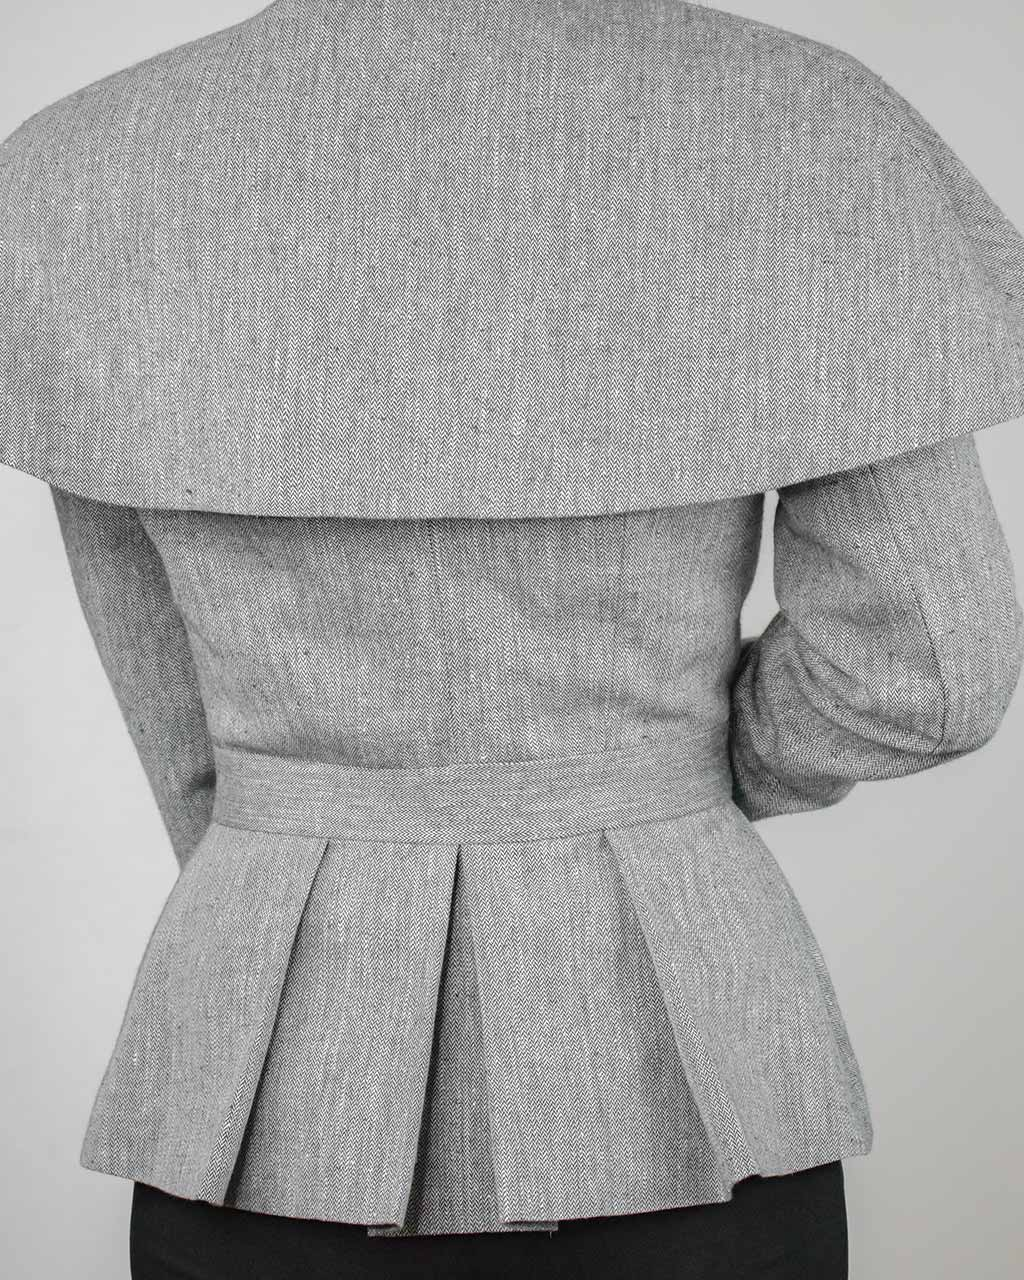 Back detail of cape and structured peplum of ethical Abbe Jacket fitted blazer by ADKN